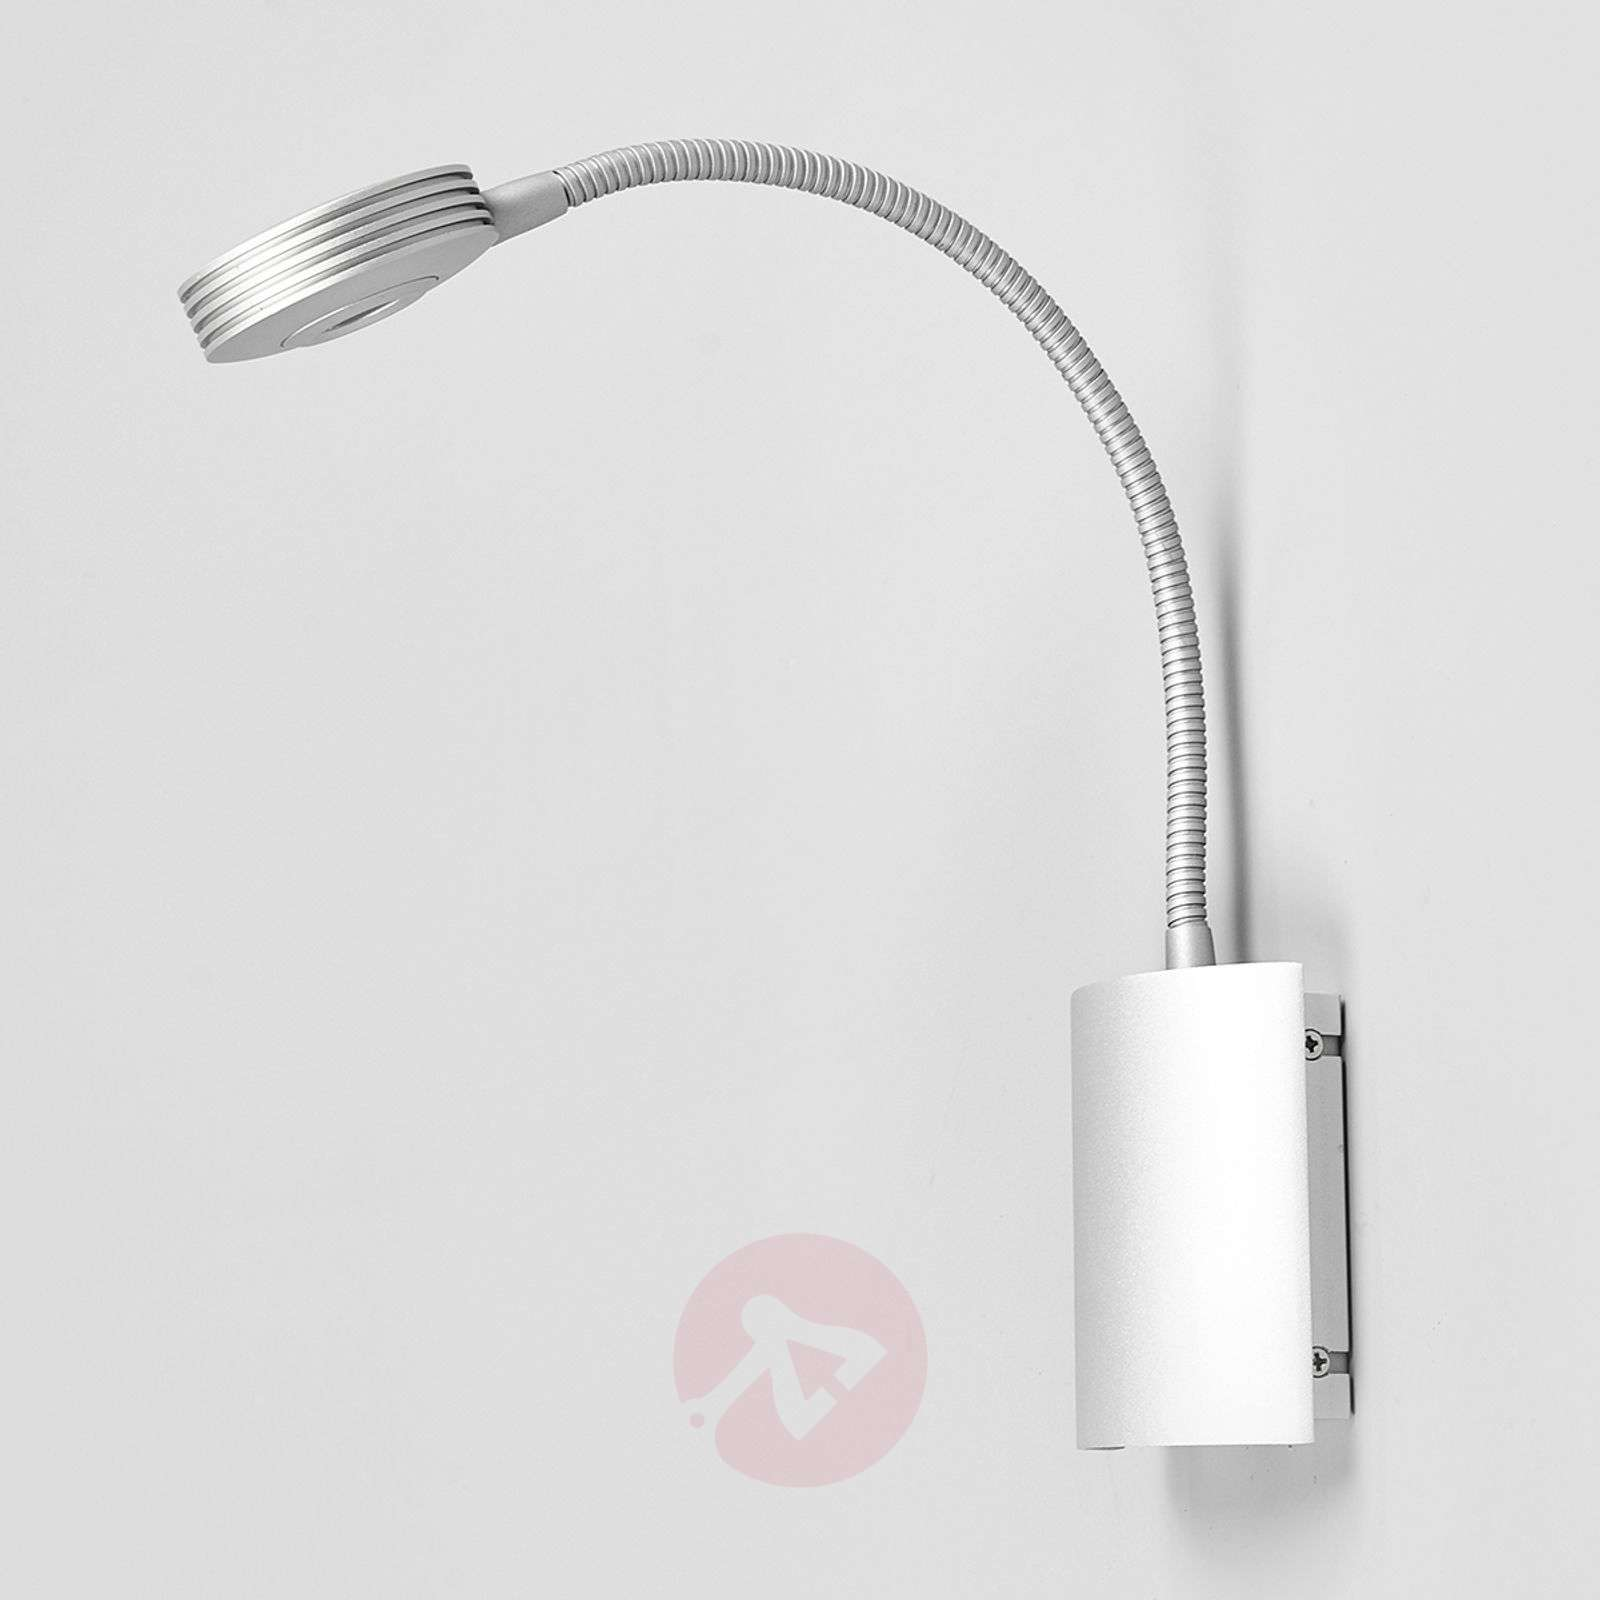 Adjustable wall light adina with led flexible arm lights adjustable wall light adina with led flexible arm 9976004 07 mozeypictures Images